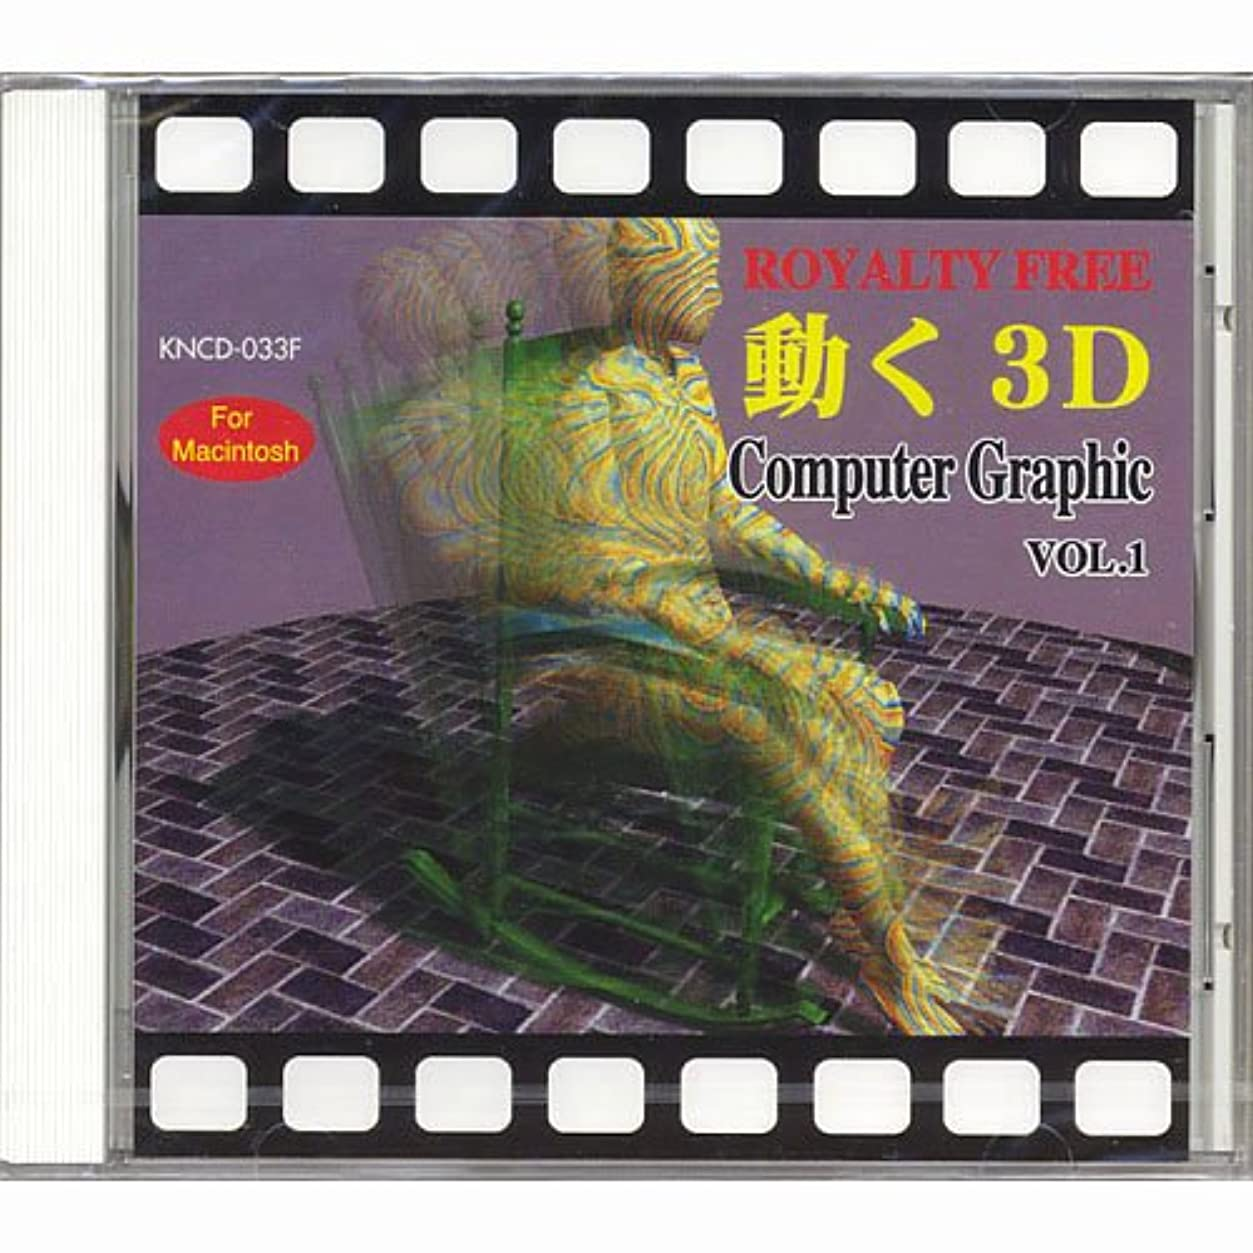 Royalty Free 動く3D COMPUTER GRAPHIC VOL.1